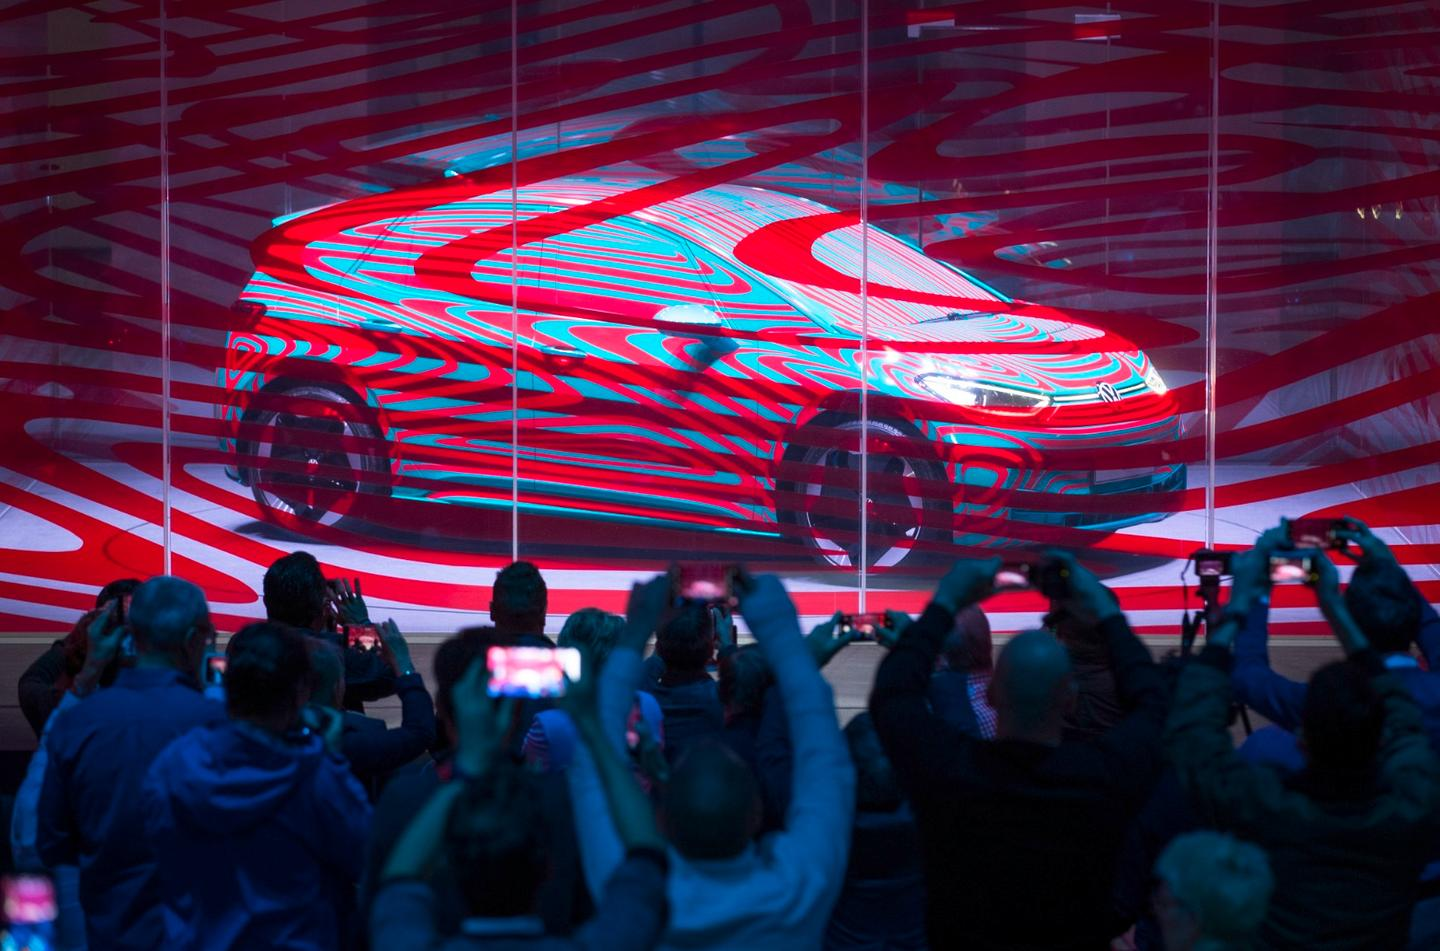 Volkswagen held a press conference on Wednesday to announce the ID.3 name and preordering